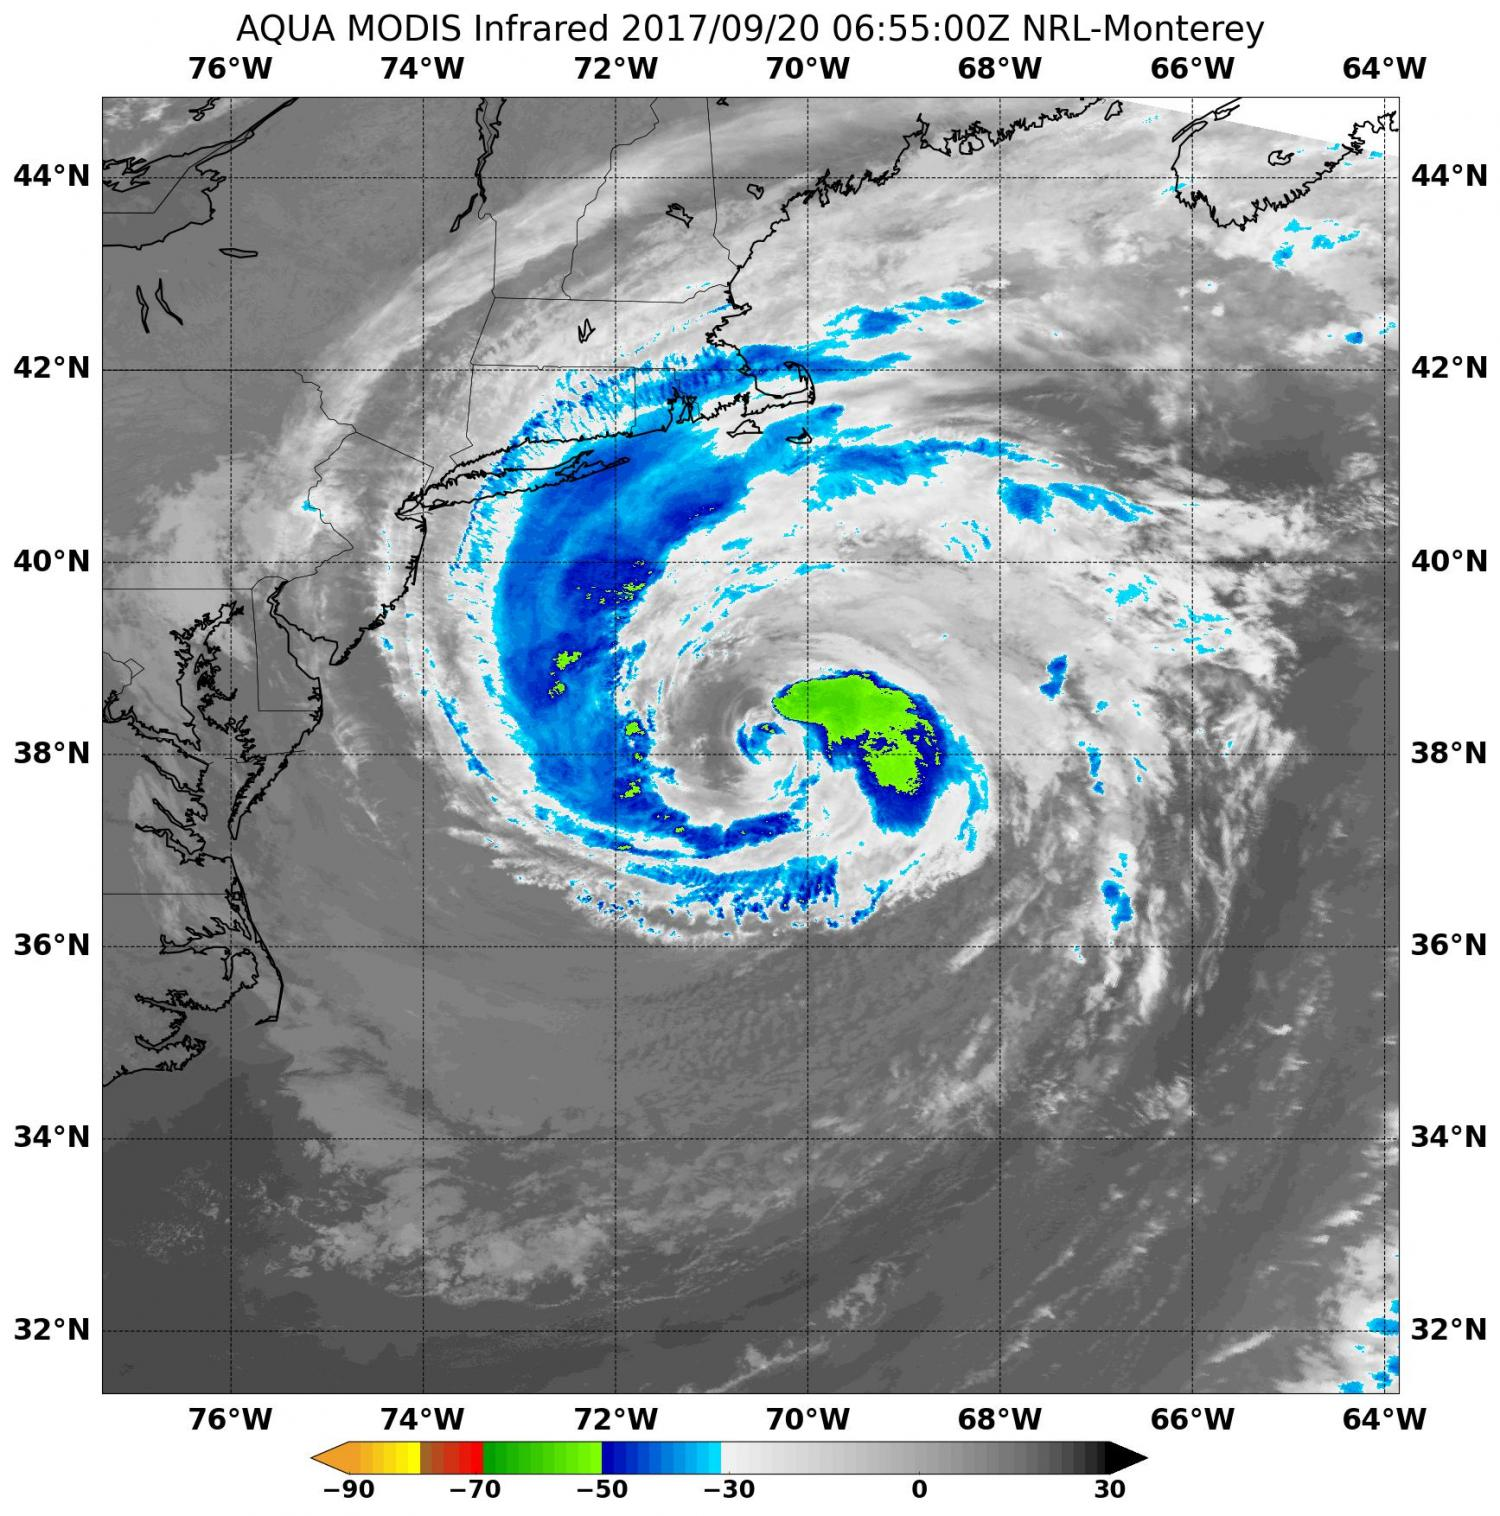 NASA Gets An Infrared View Of Large Tropical Storm Jose